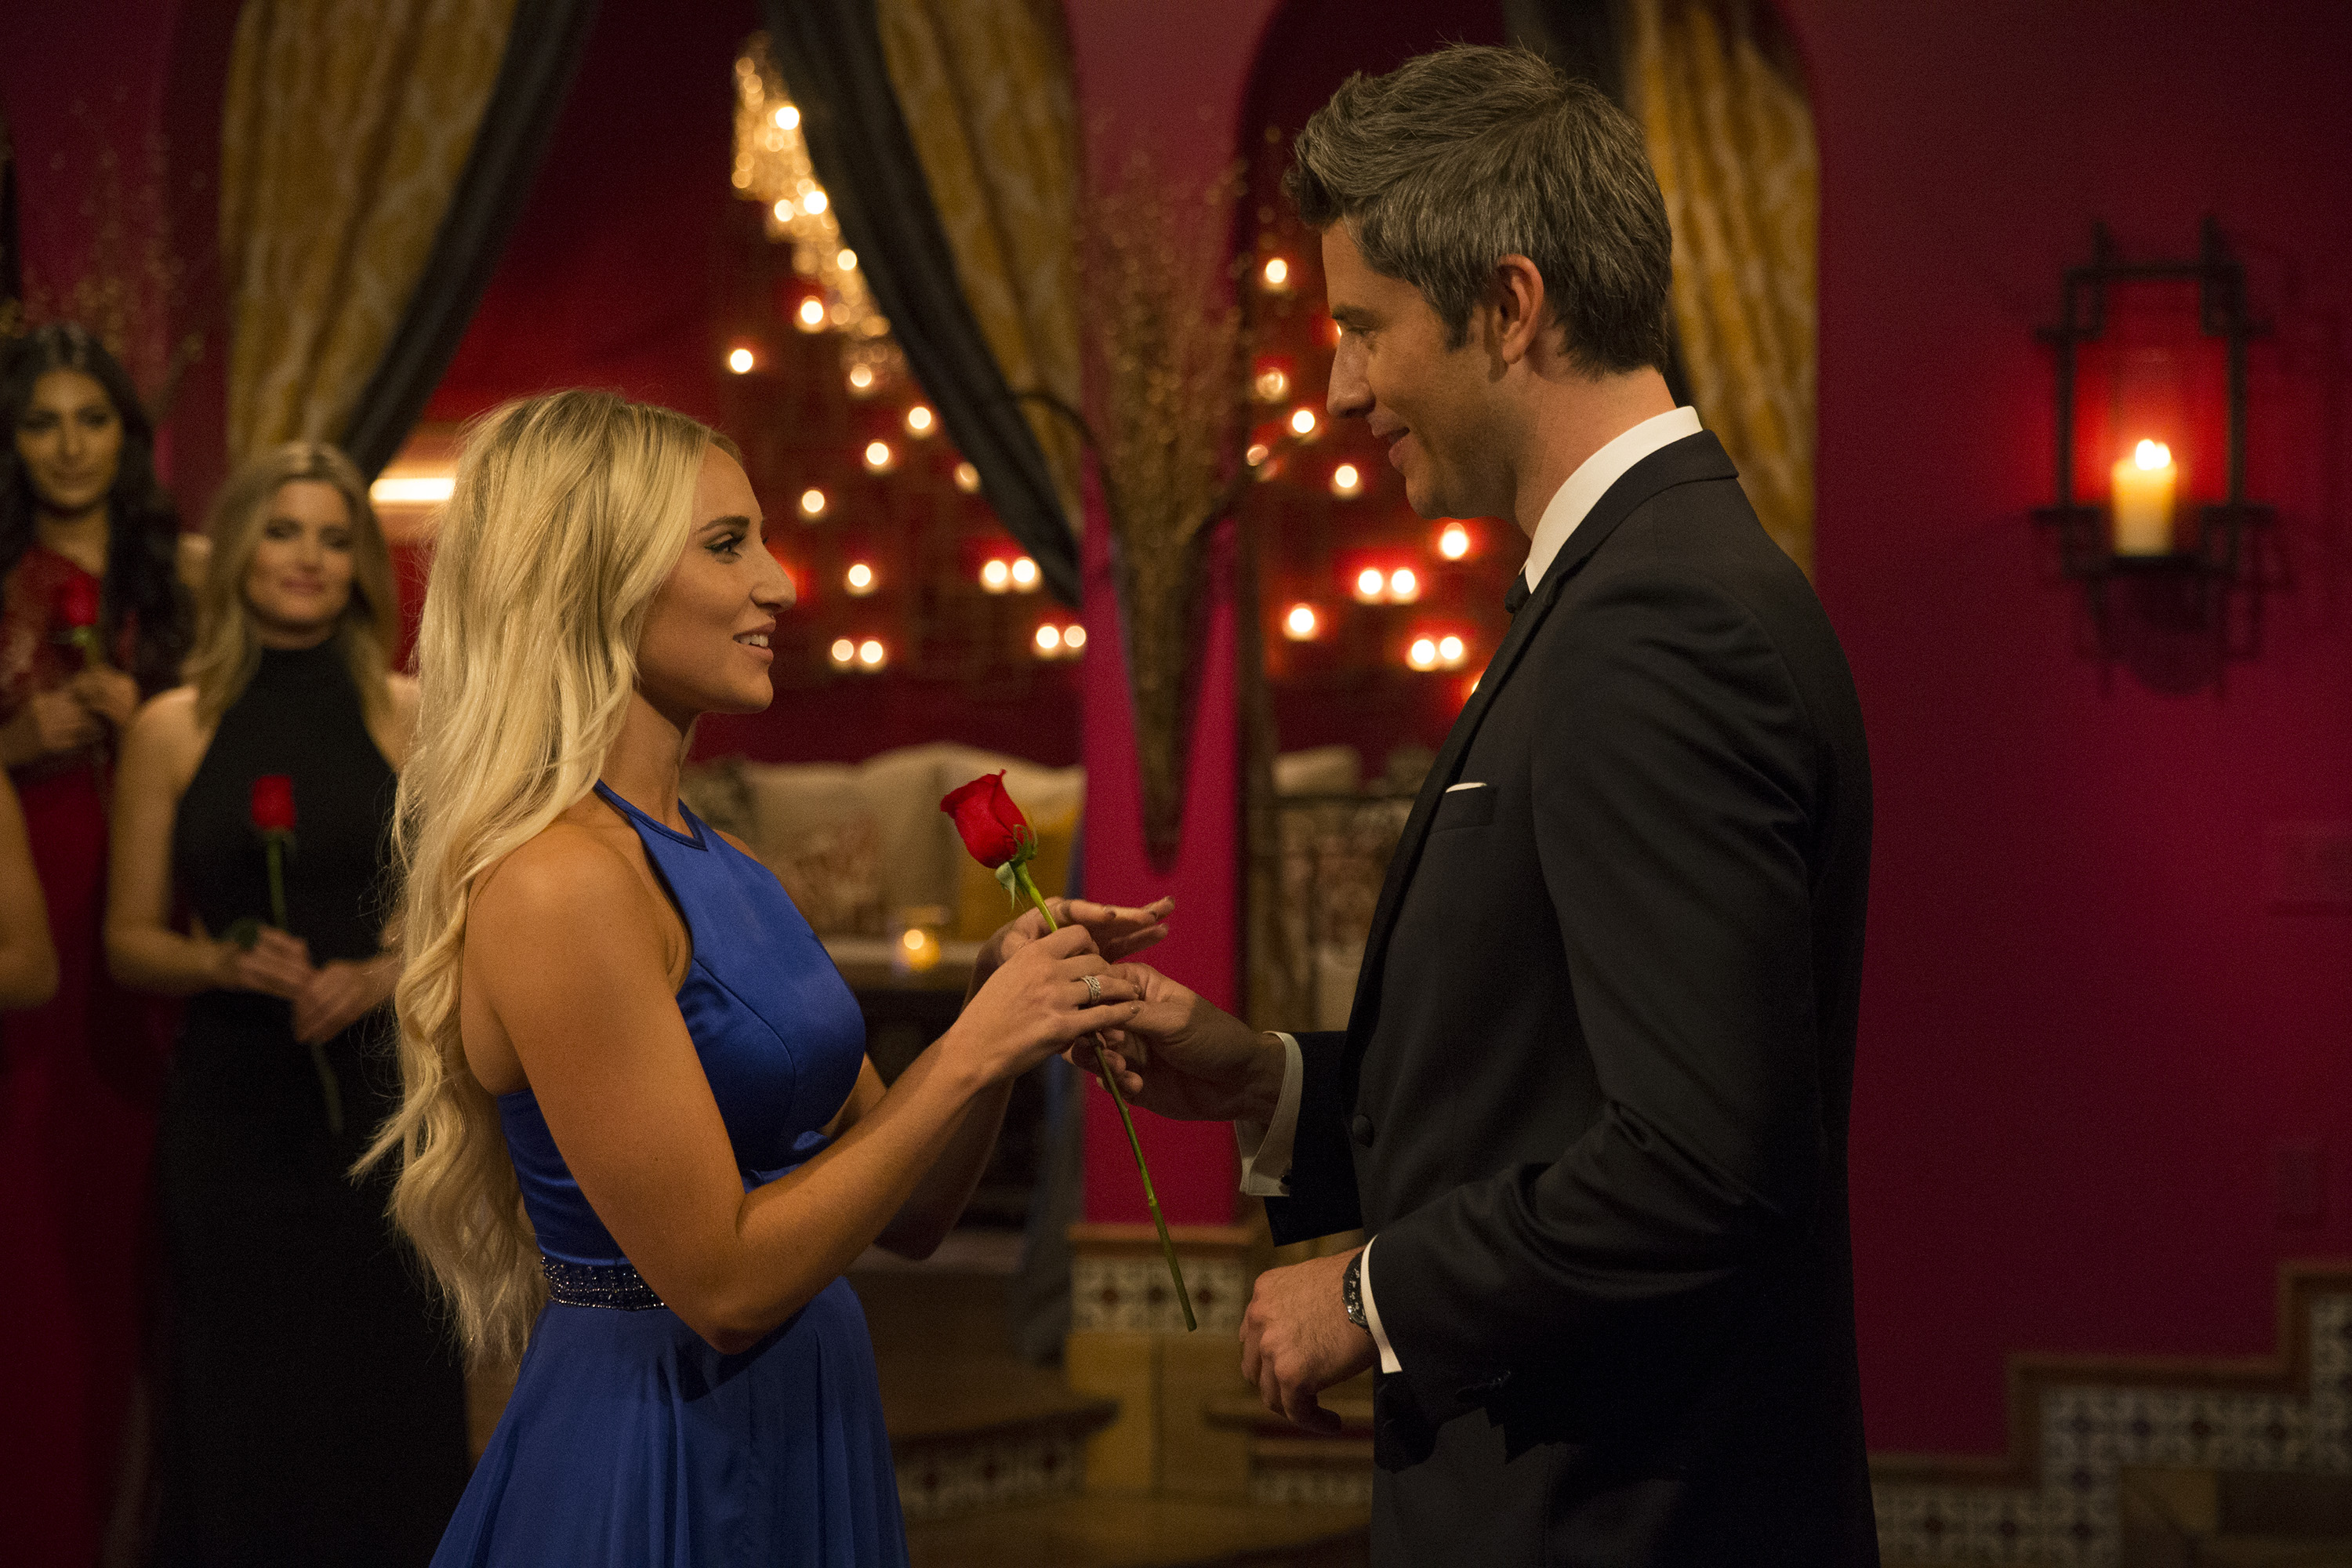 Arie Luyendyk Jr. starts on the 22nd season of ABC's The Bachelor.